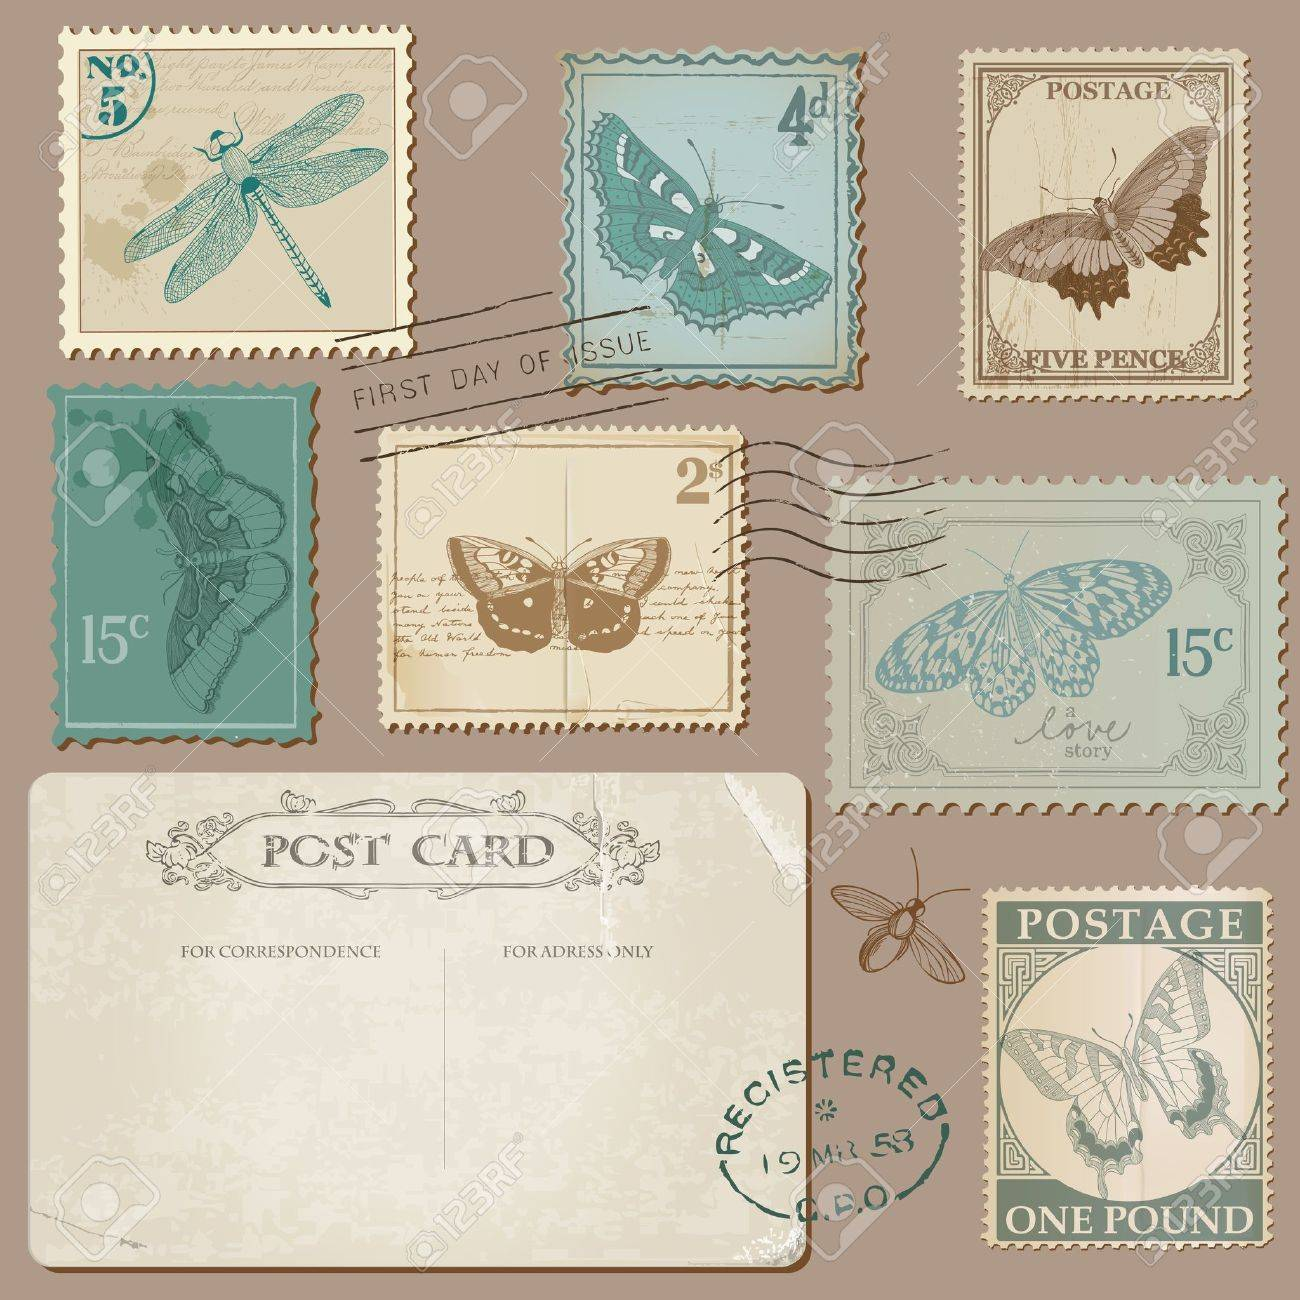 Vintage Postcard And Postage Stamps With Butterflies   For Wedding Design,  Invitation, Scrapbook Stock